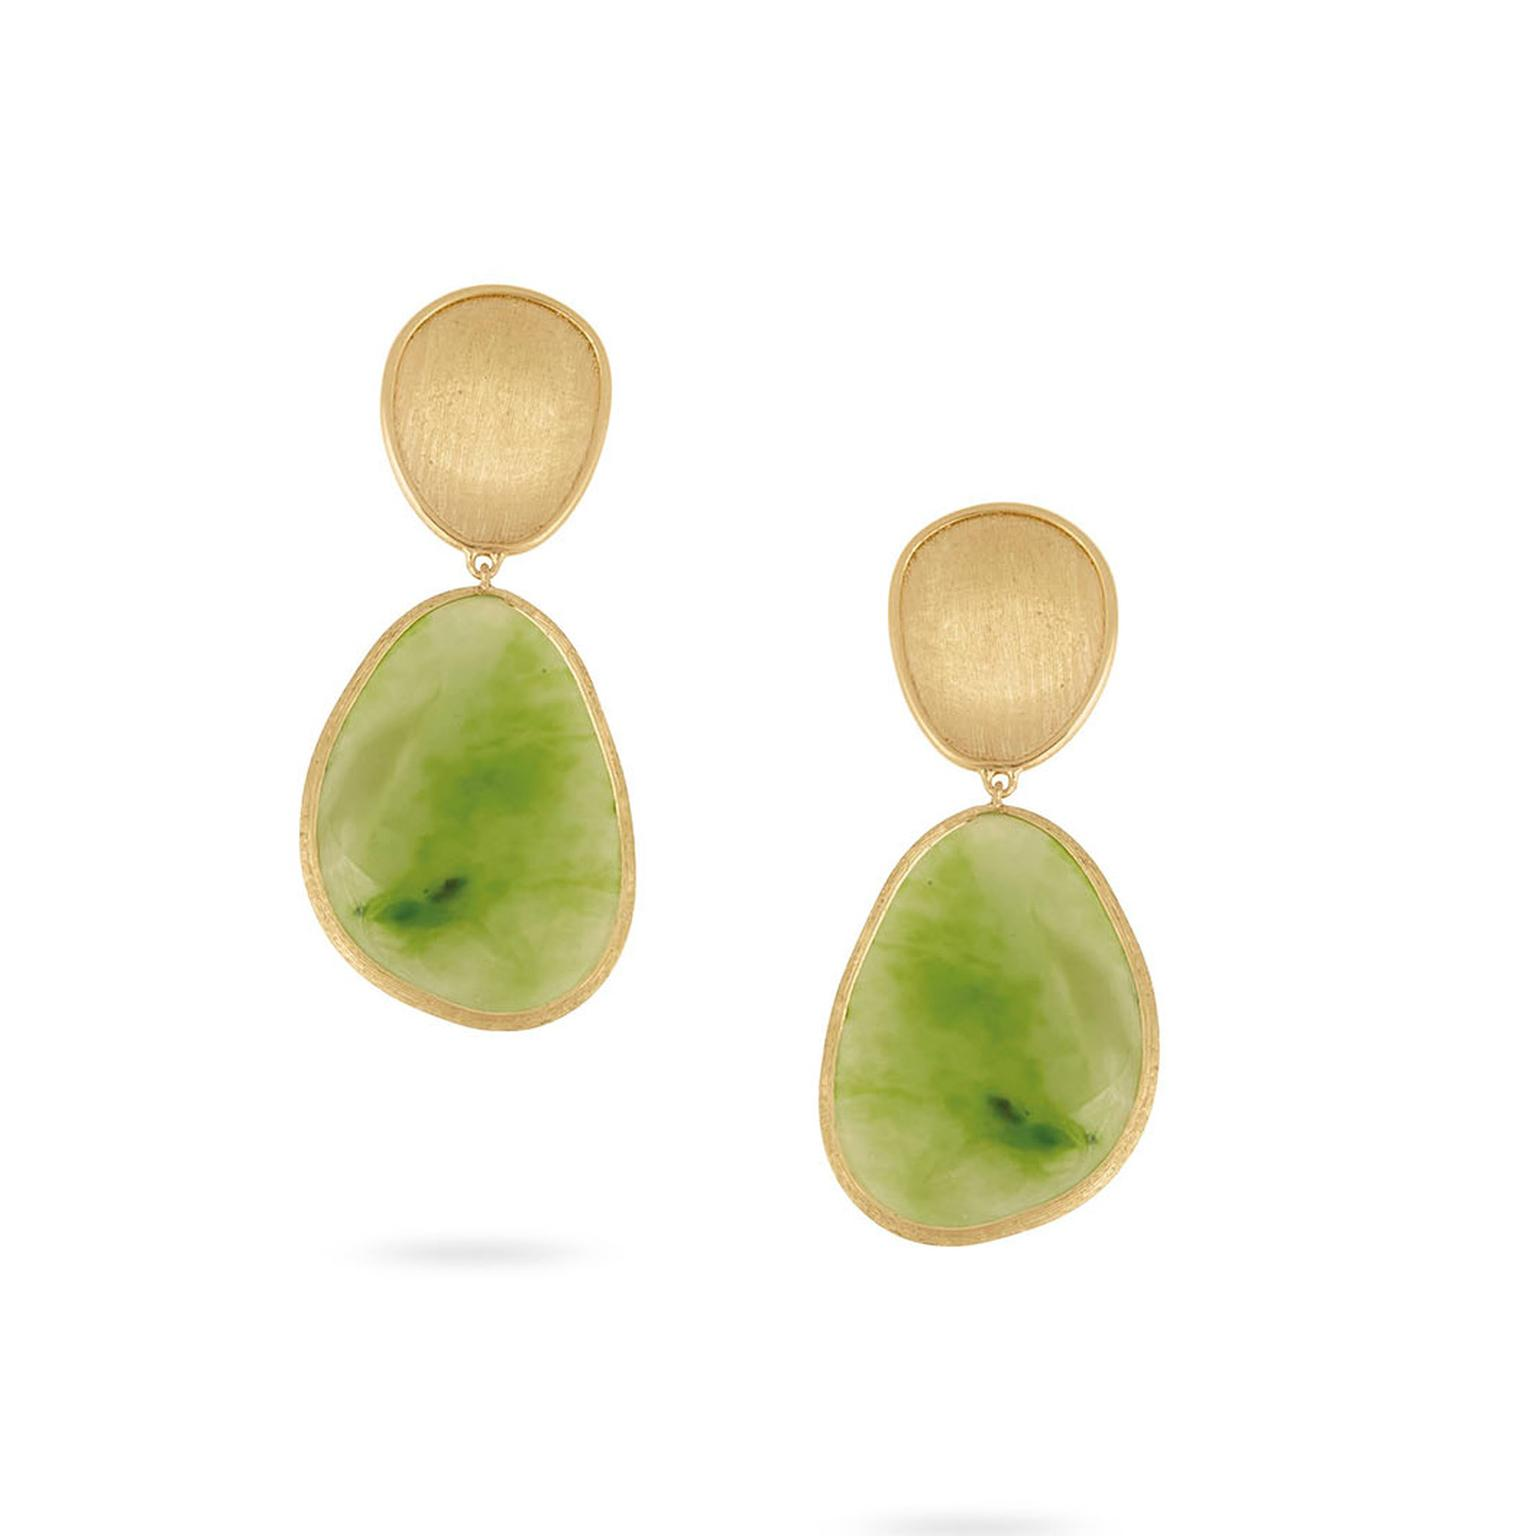 Marco Bicego Lunaria Unico jade earrings